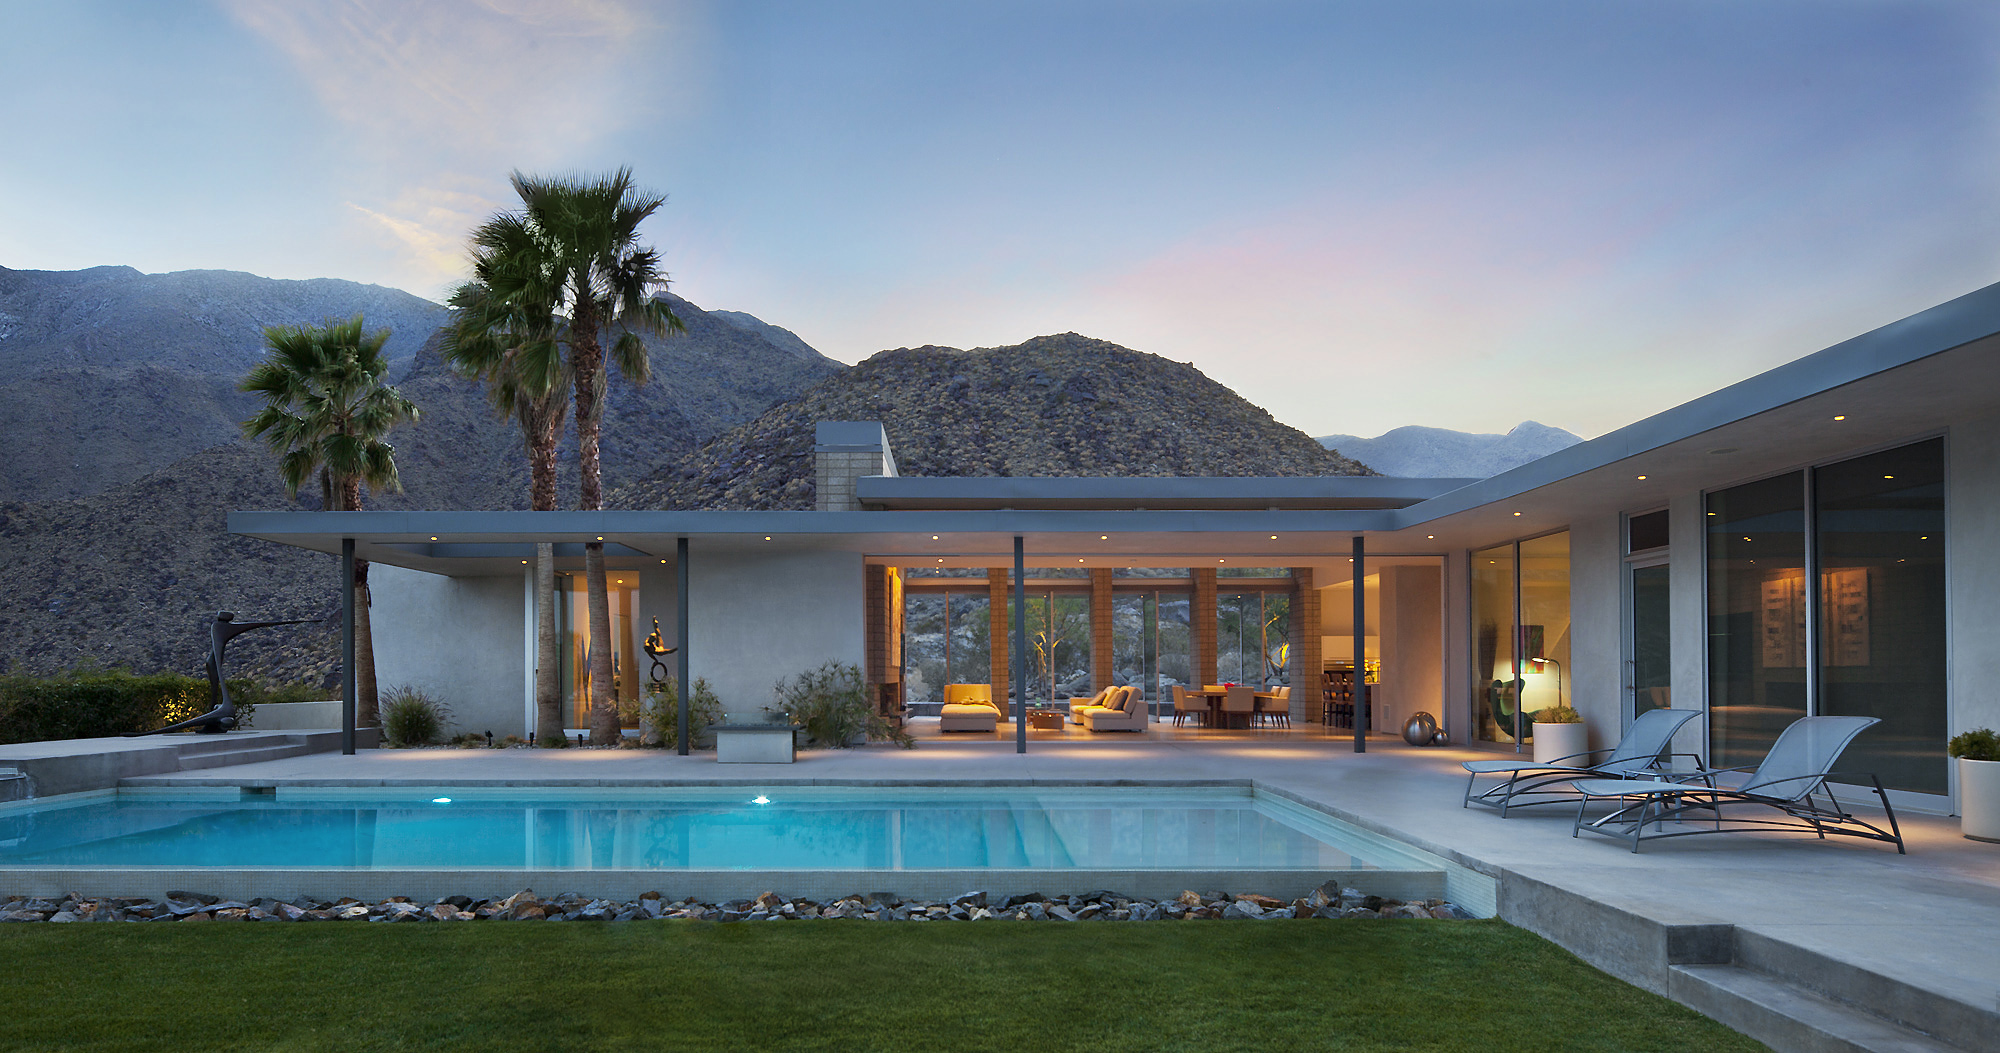 Exterior sunset, Palm Springs. Janie Fitzgerald, Los Angeles architectural photographer.